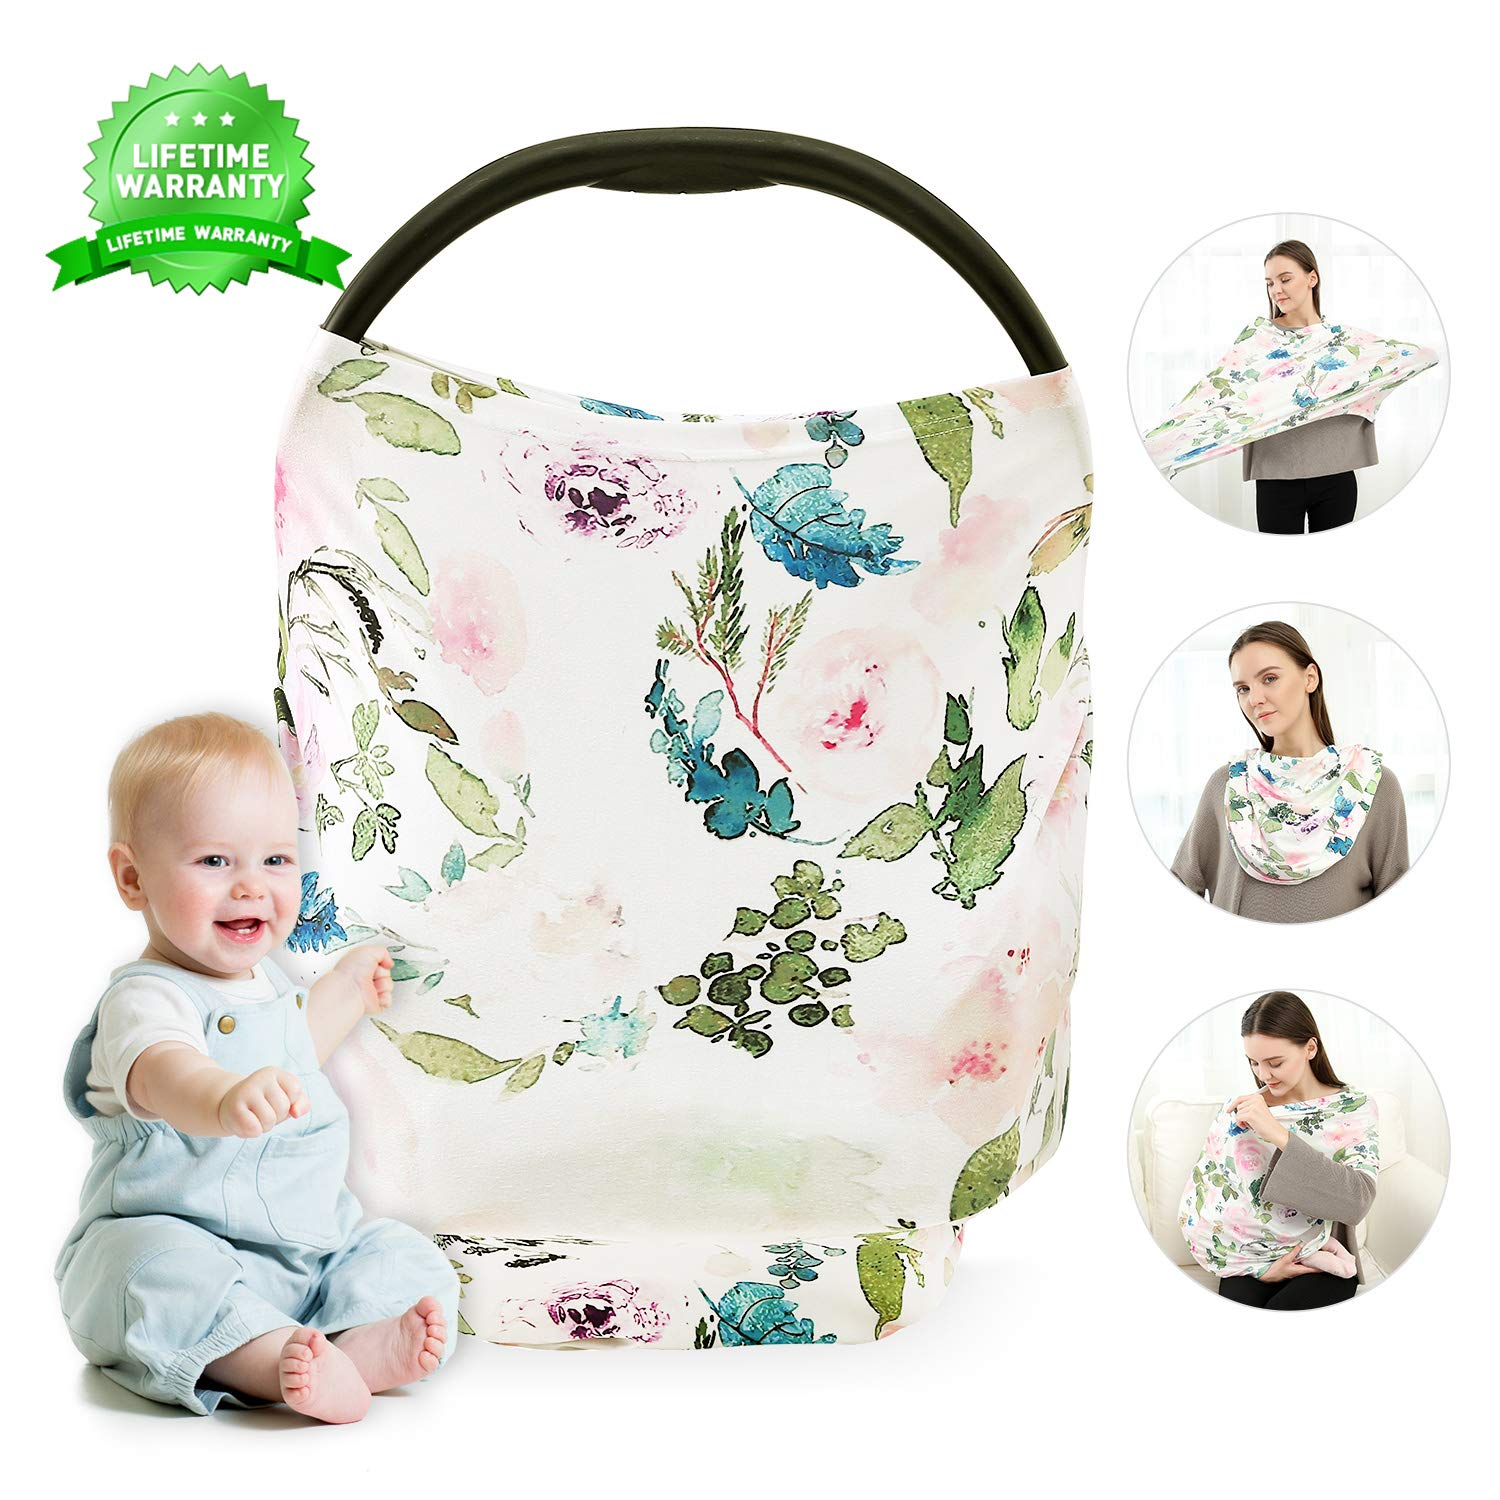 Nursing Cover, Breastfeeding Cover, Carseat Canopy, Car Seat Covers for Babies Stretchy Premium Soft Cover with Multi-Use for Stroller, Scarf, Shopping Cart, Baby Shower Gifts for Boys&Girls (Flower)